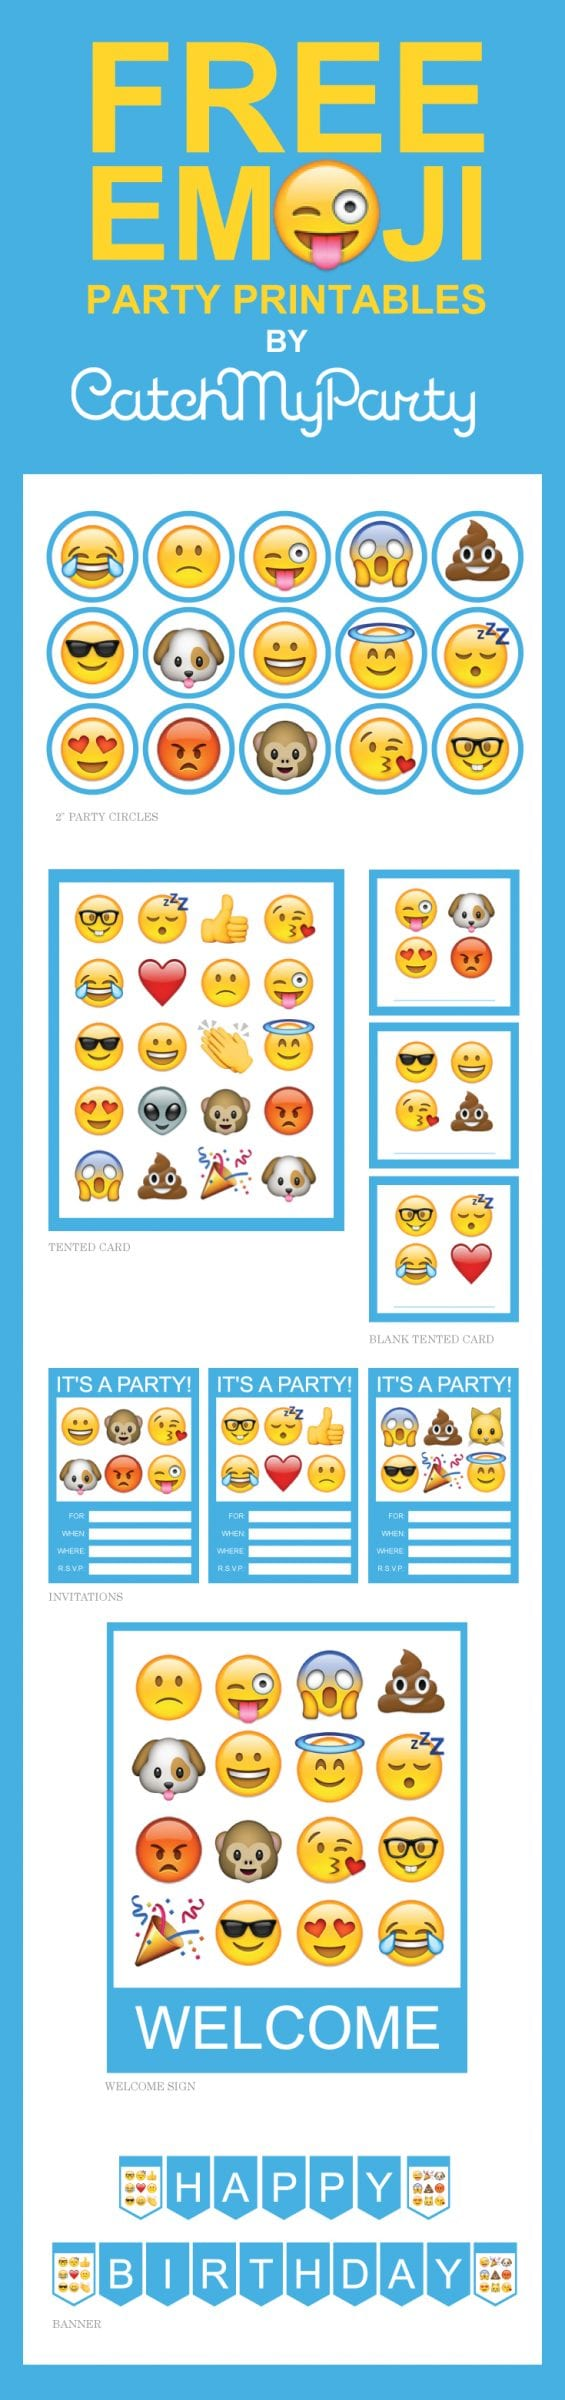 Free Emoji Party Printables Catch My Party